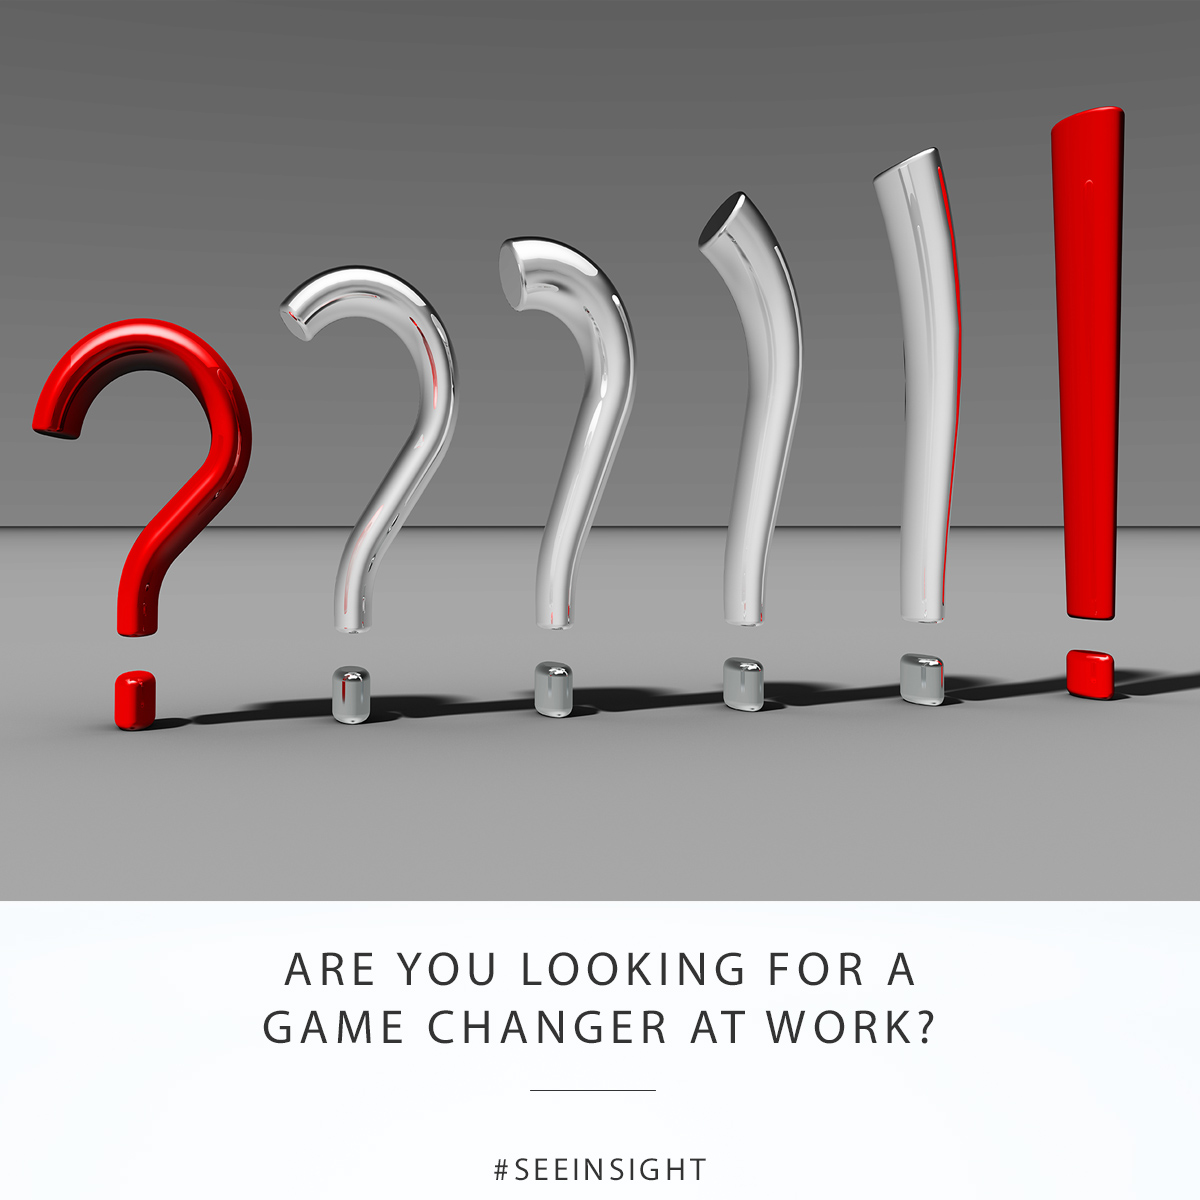 Are you looking for a game changer at work?